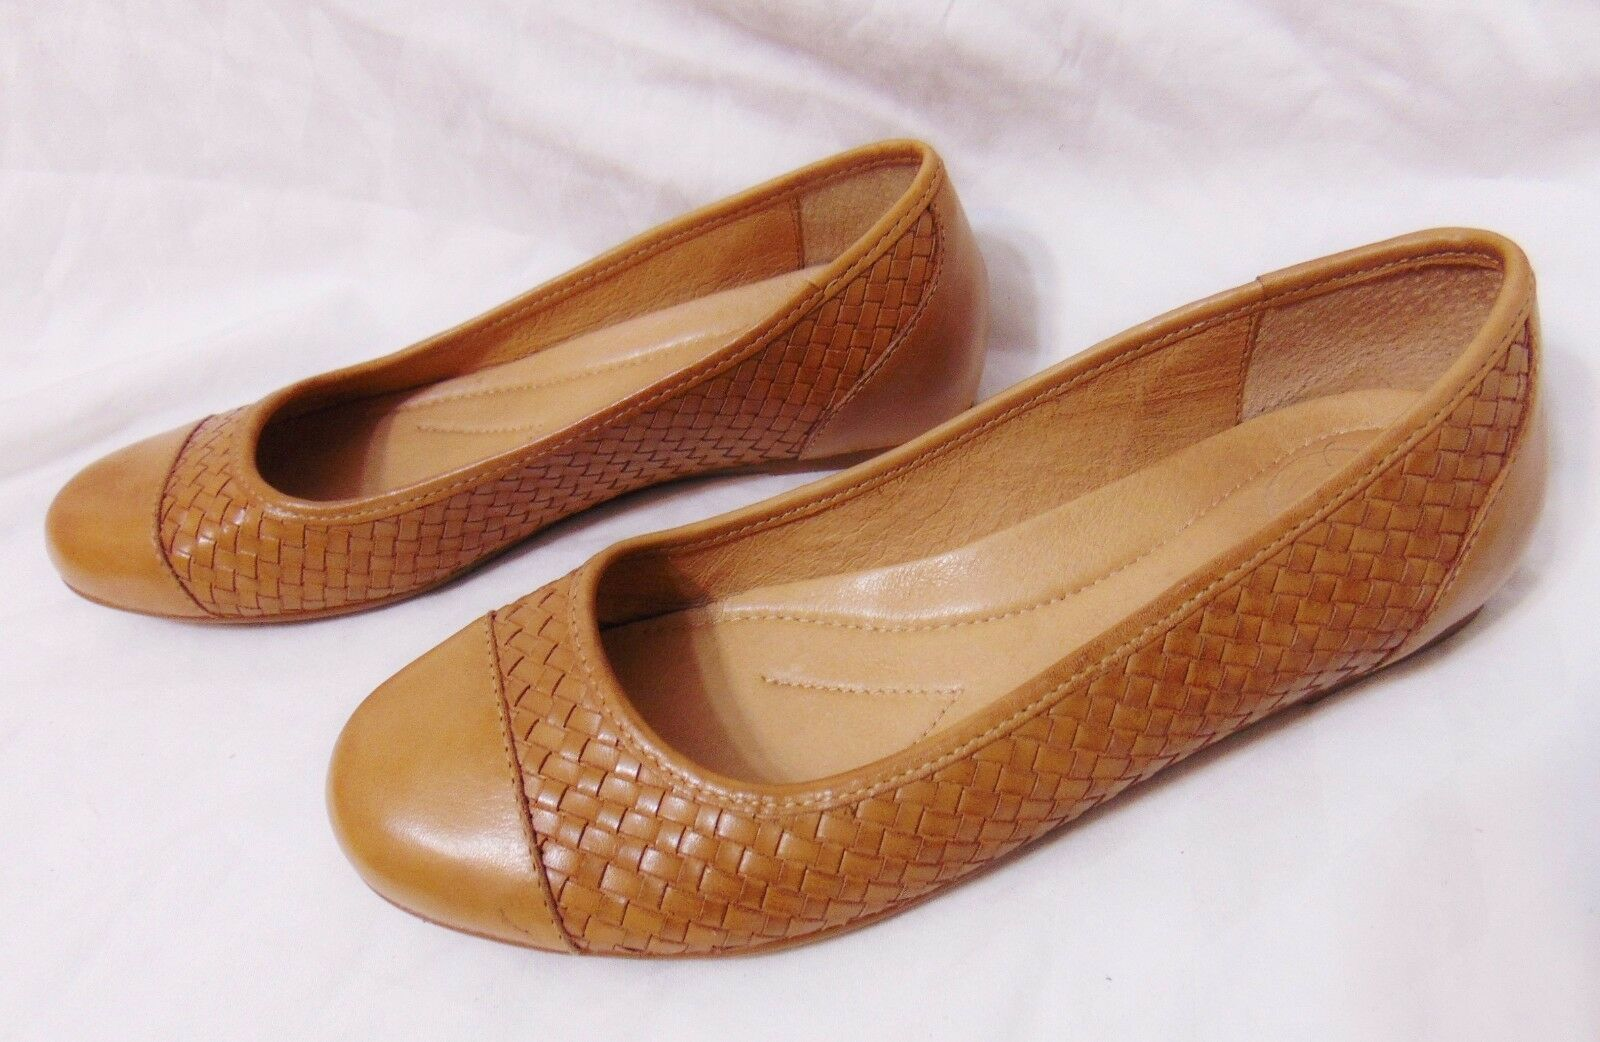 NURTURE Charliee Womens Ballet Flats Style shoes 6.5 M Tan Woven Cap Toe Leather